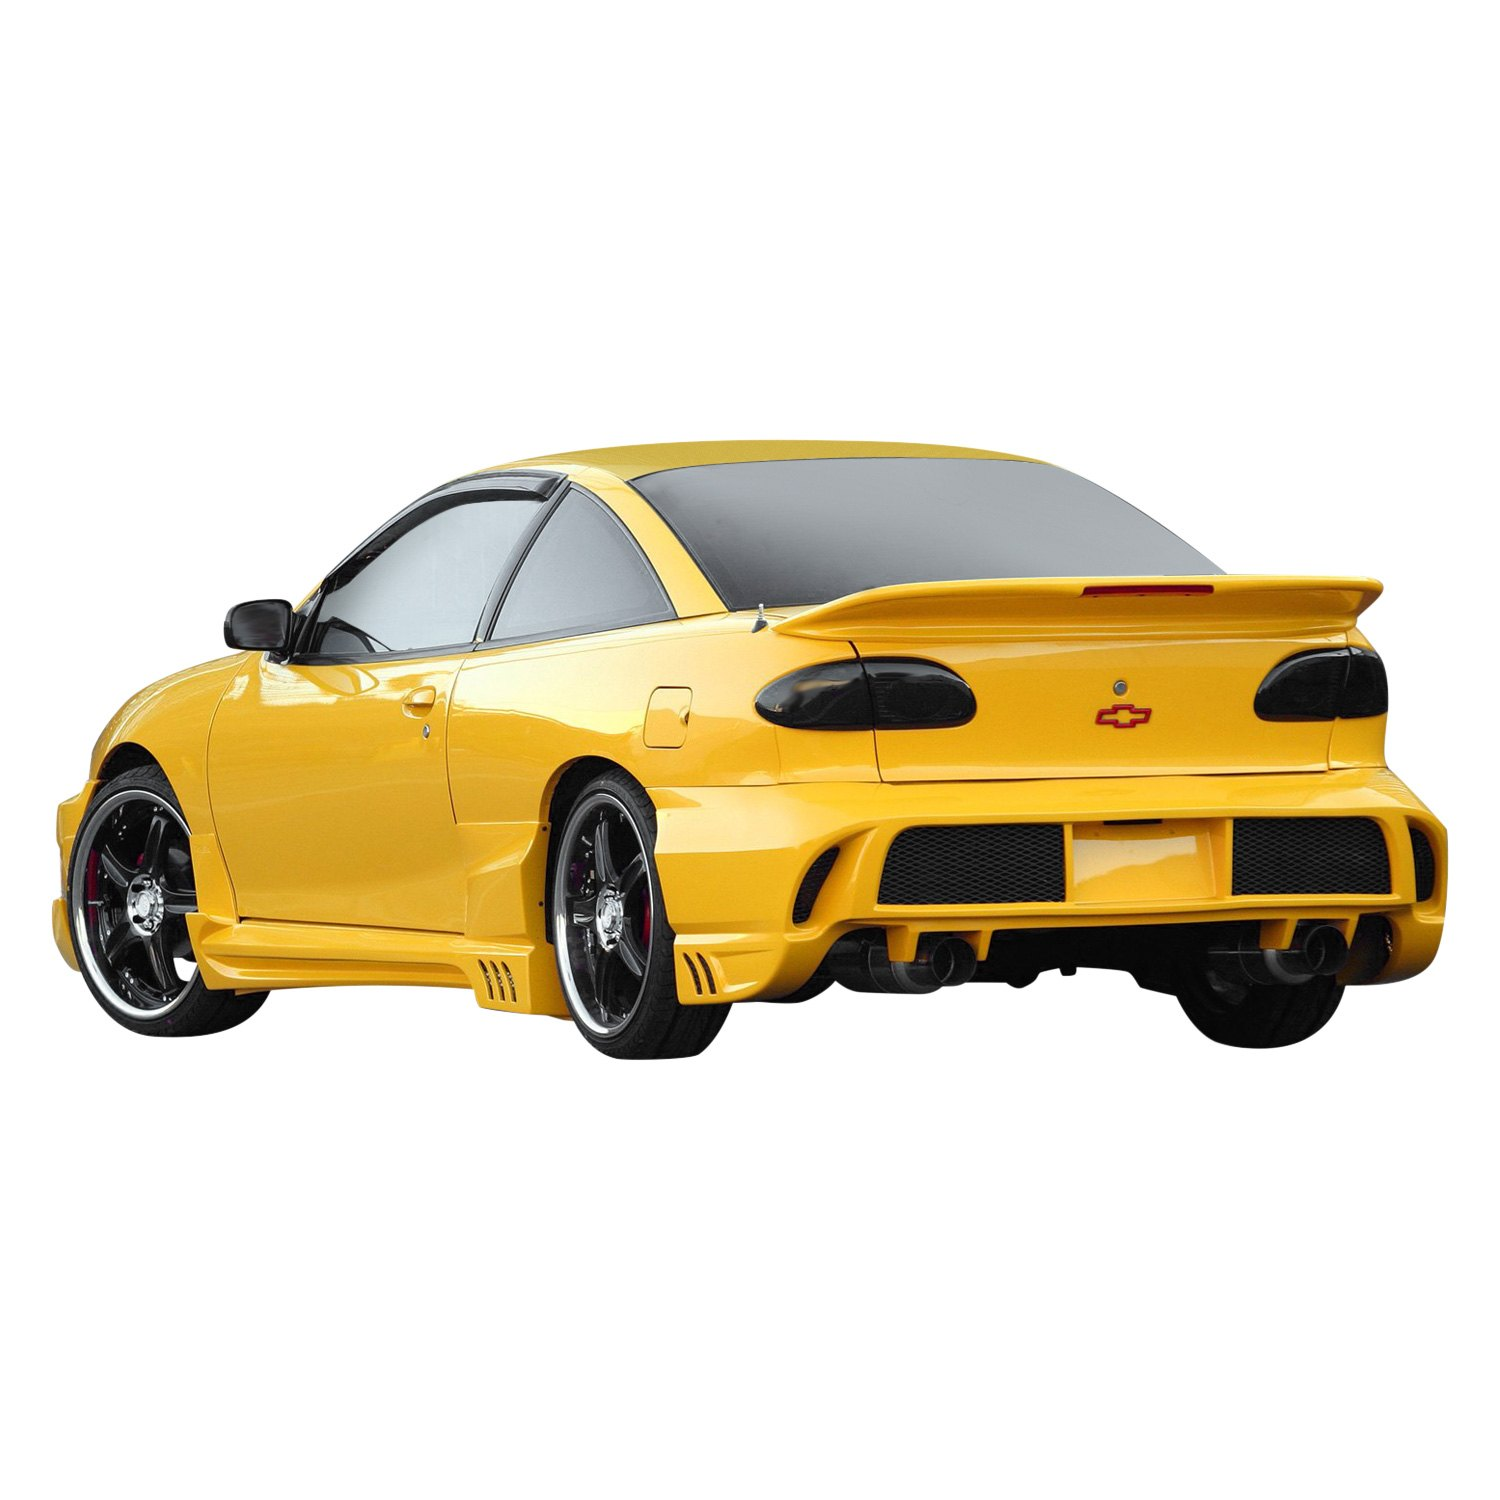 hight resolution of for chevy cavalier 1995 1999 xenon 11270 body kit unpainted